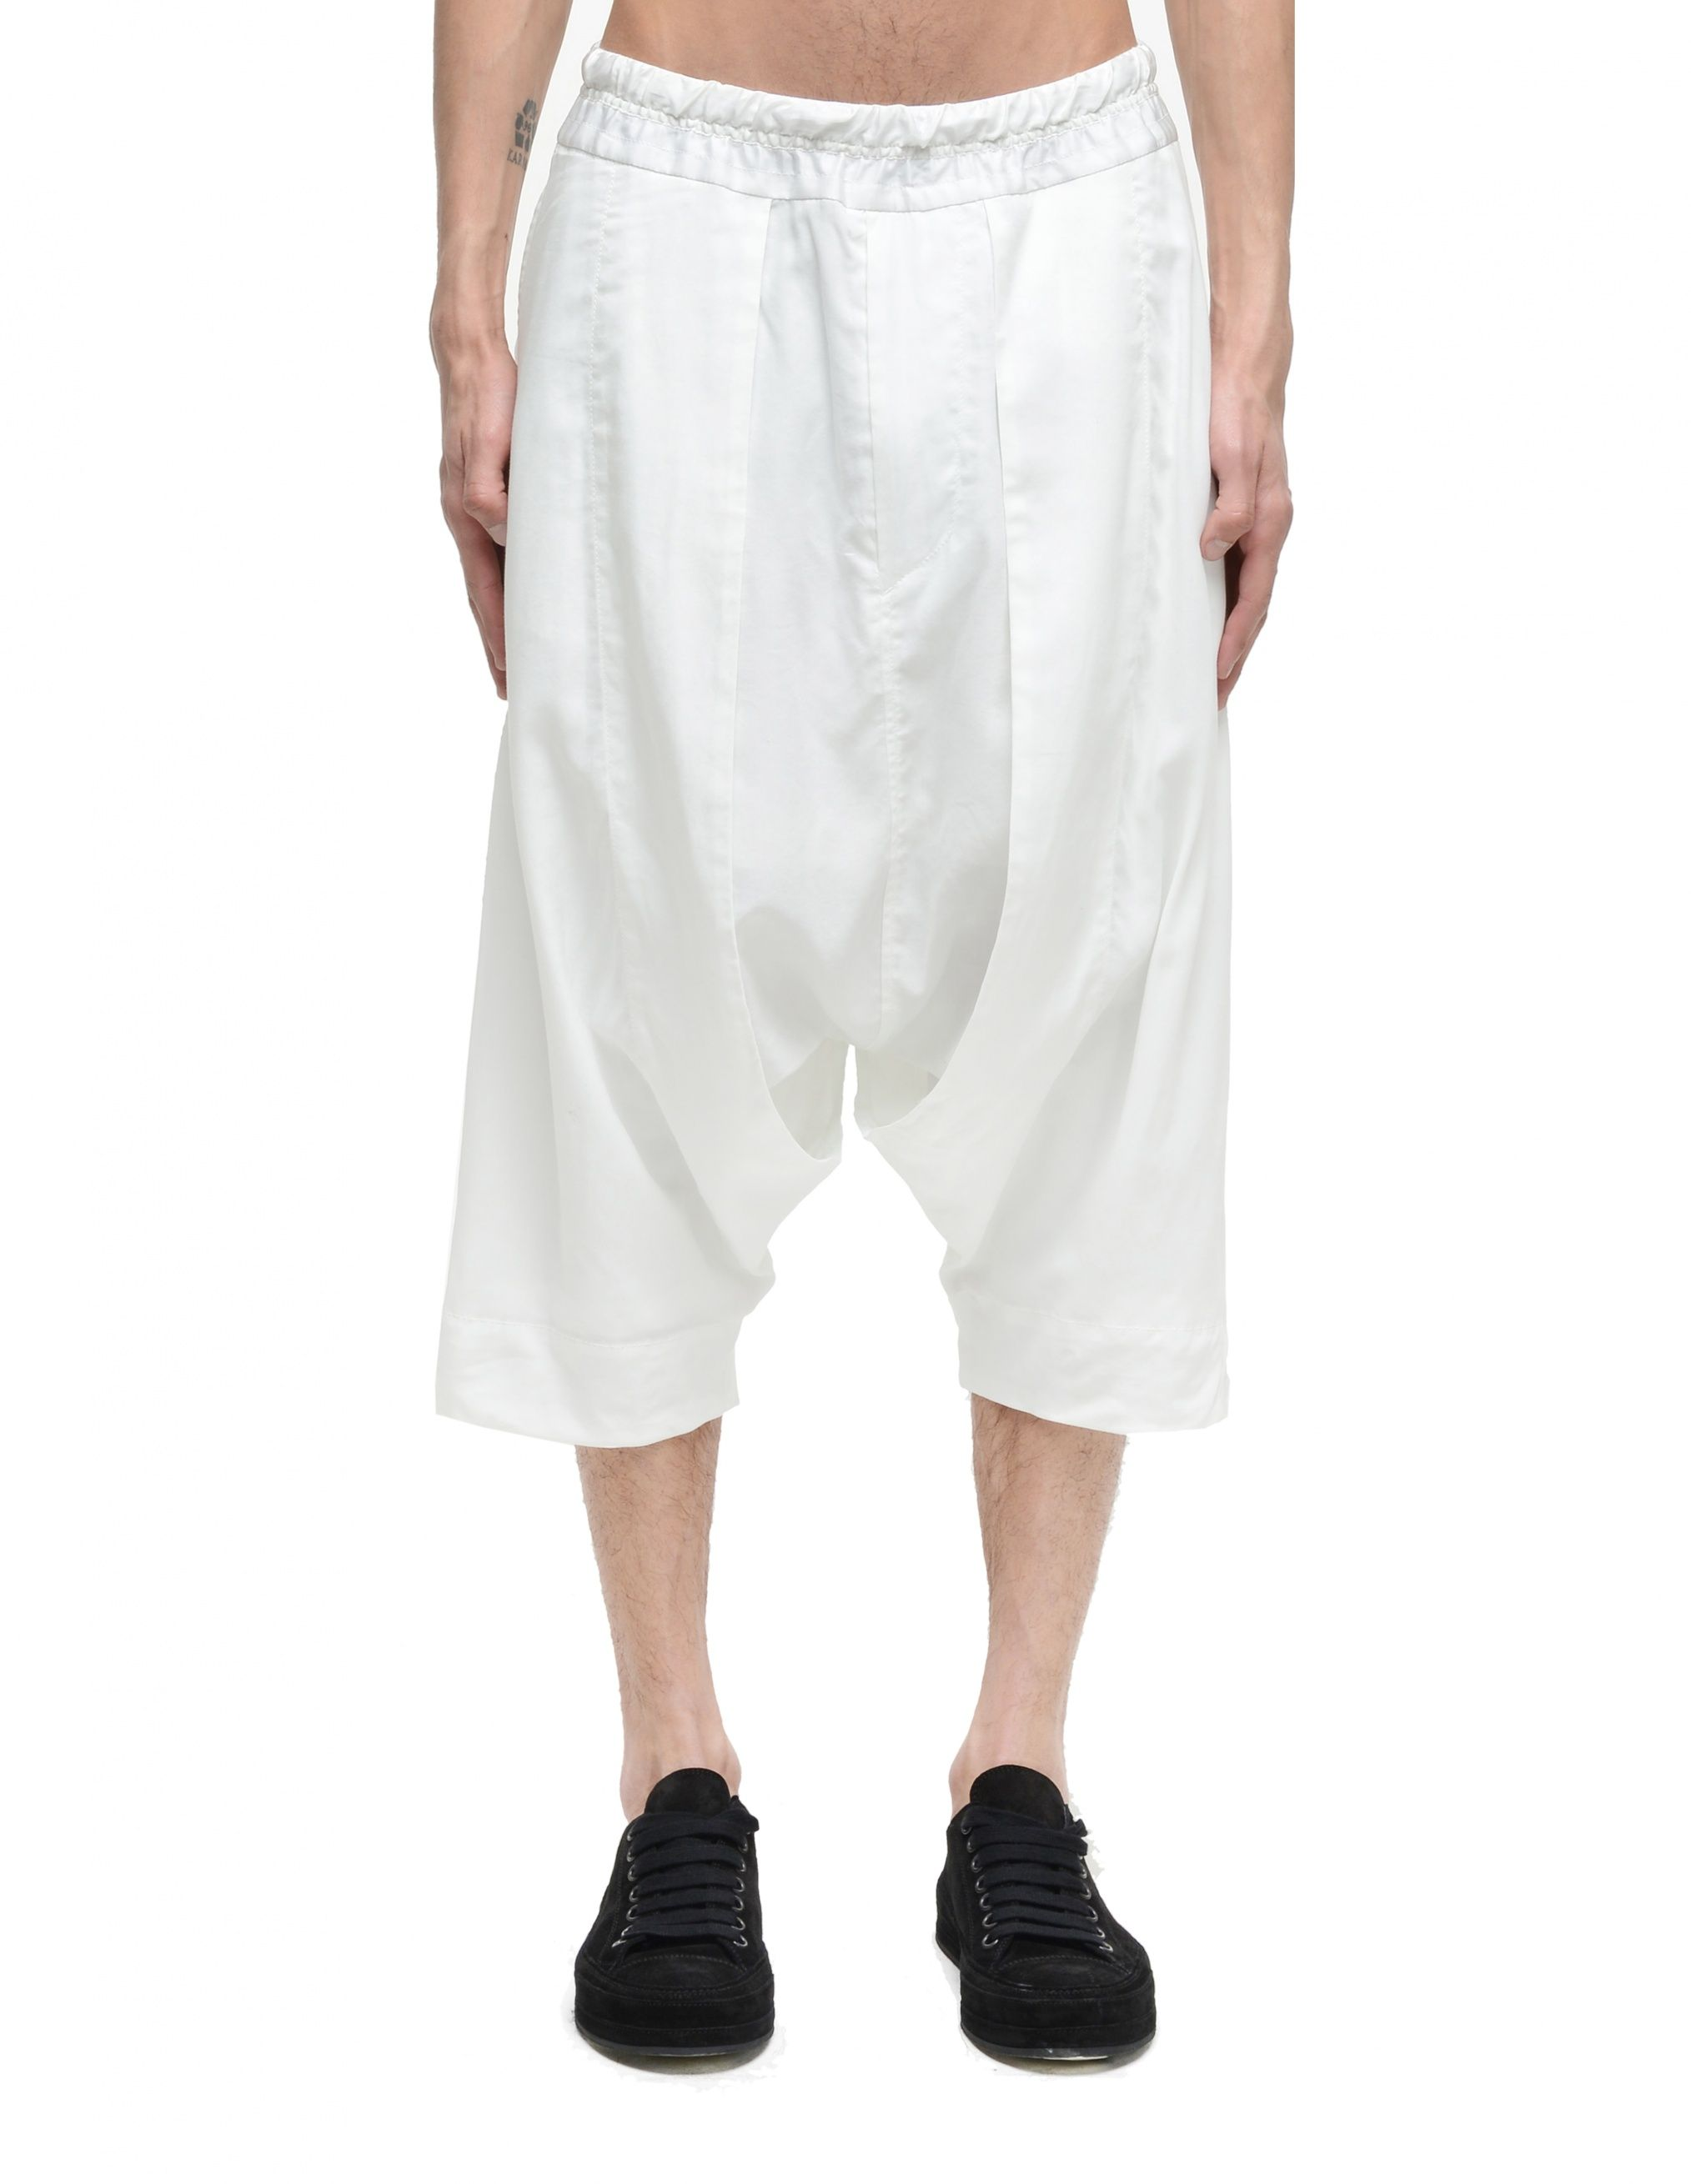 Cotton and rayon shorts Julius - buy